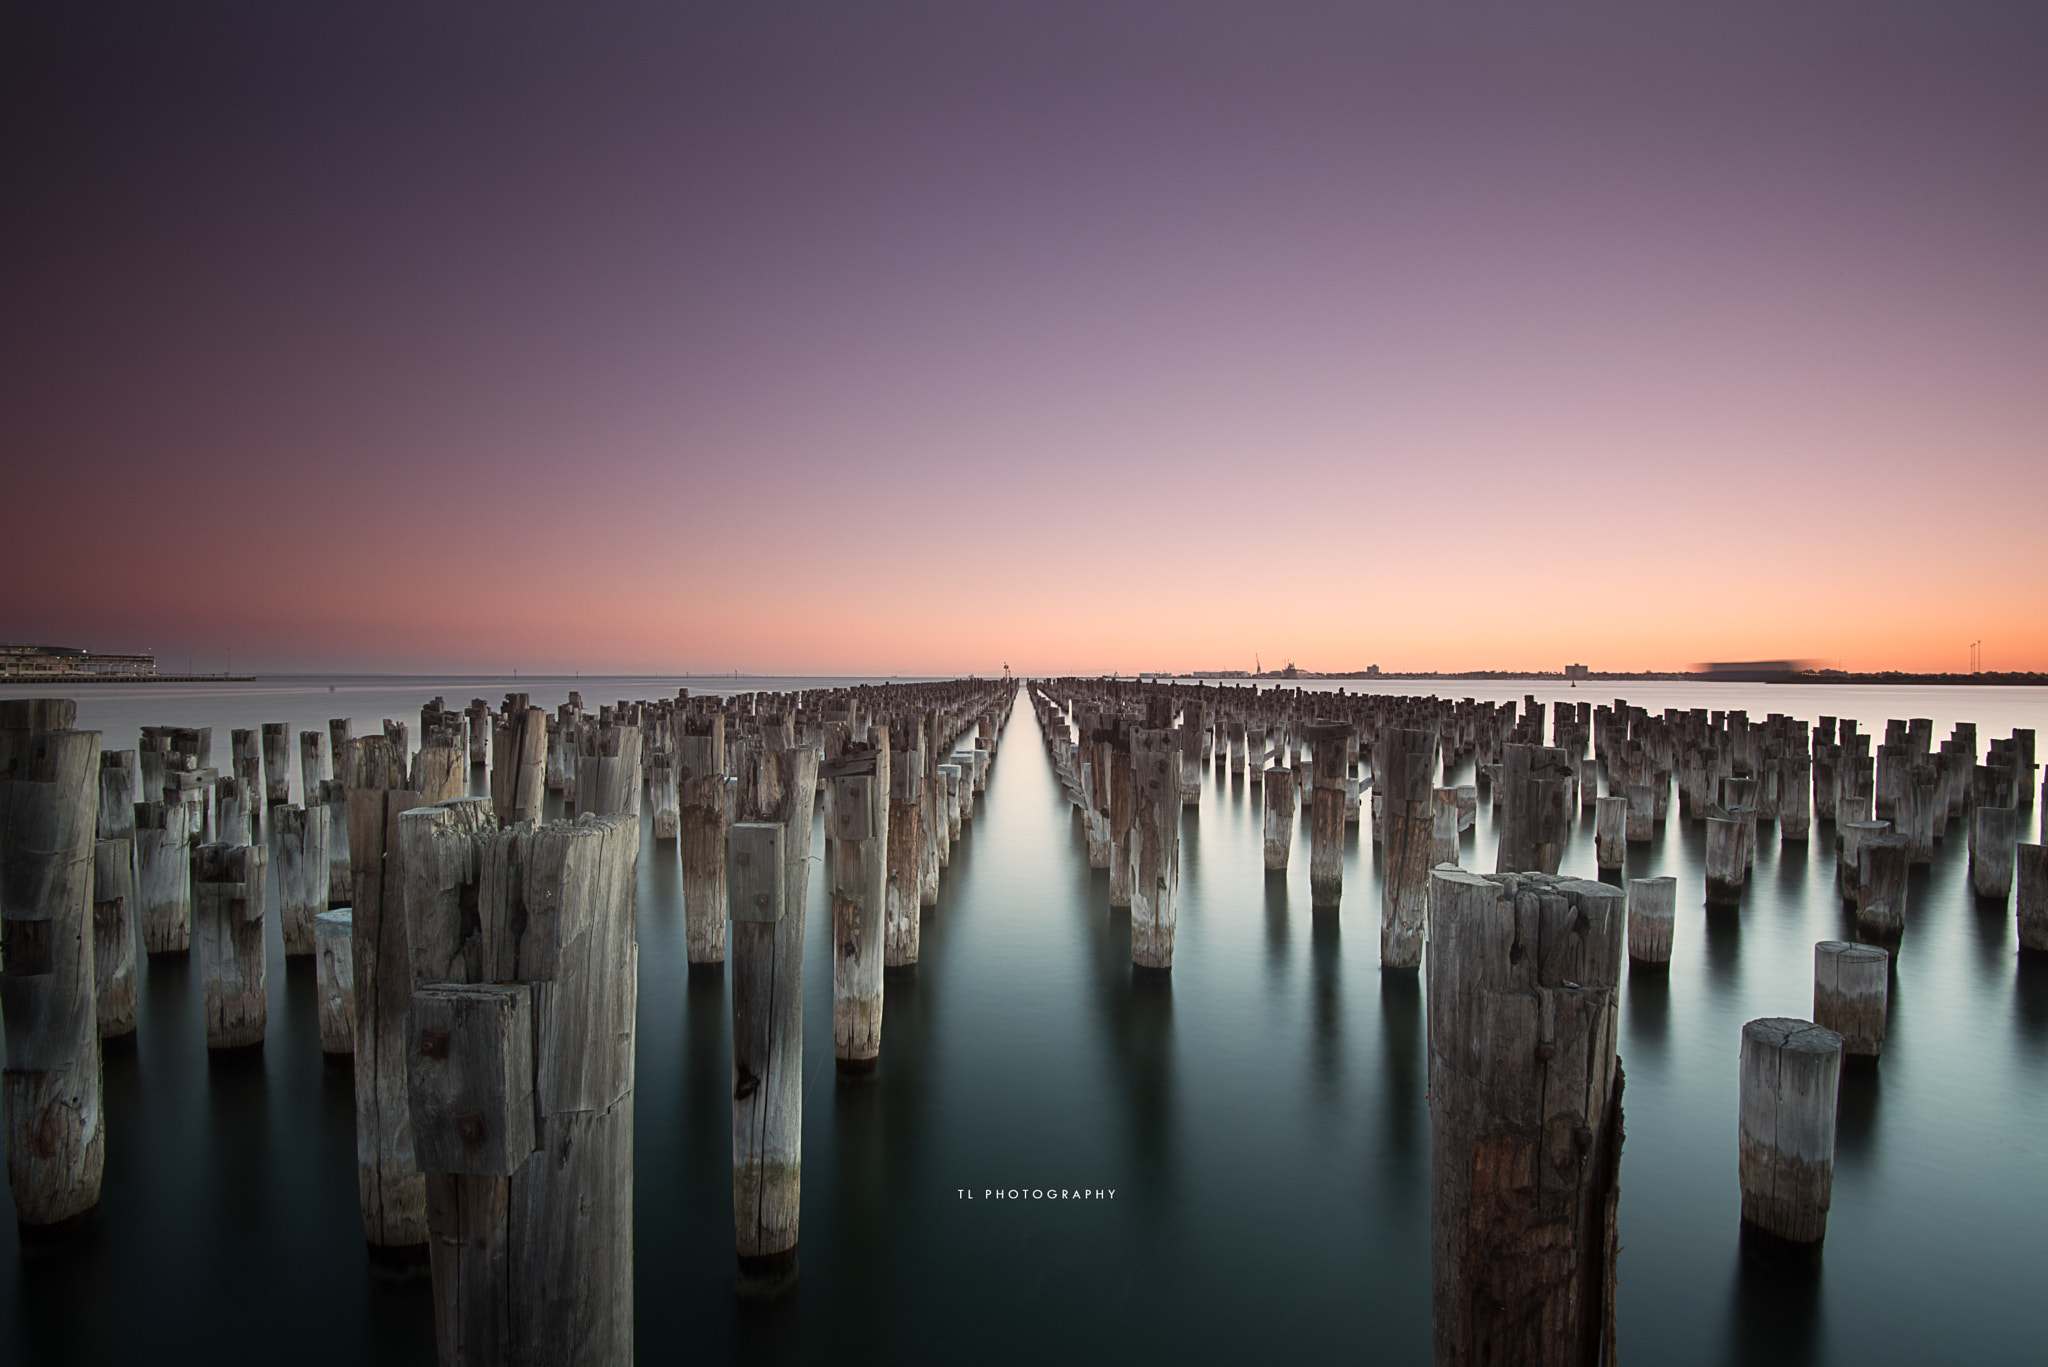 Photograph Princes Pier by Tony Lim on 500px